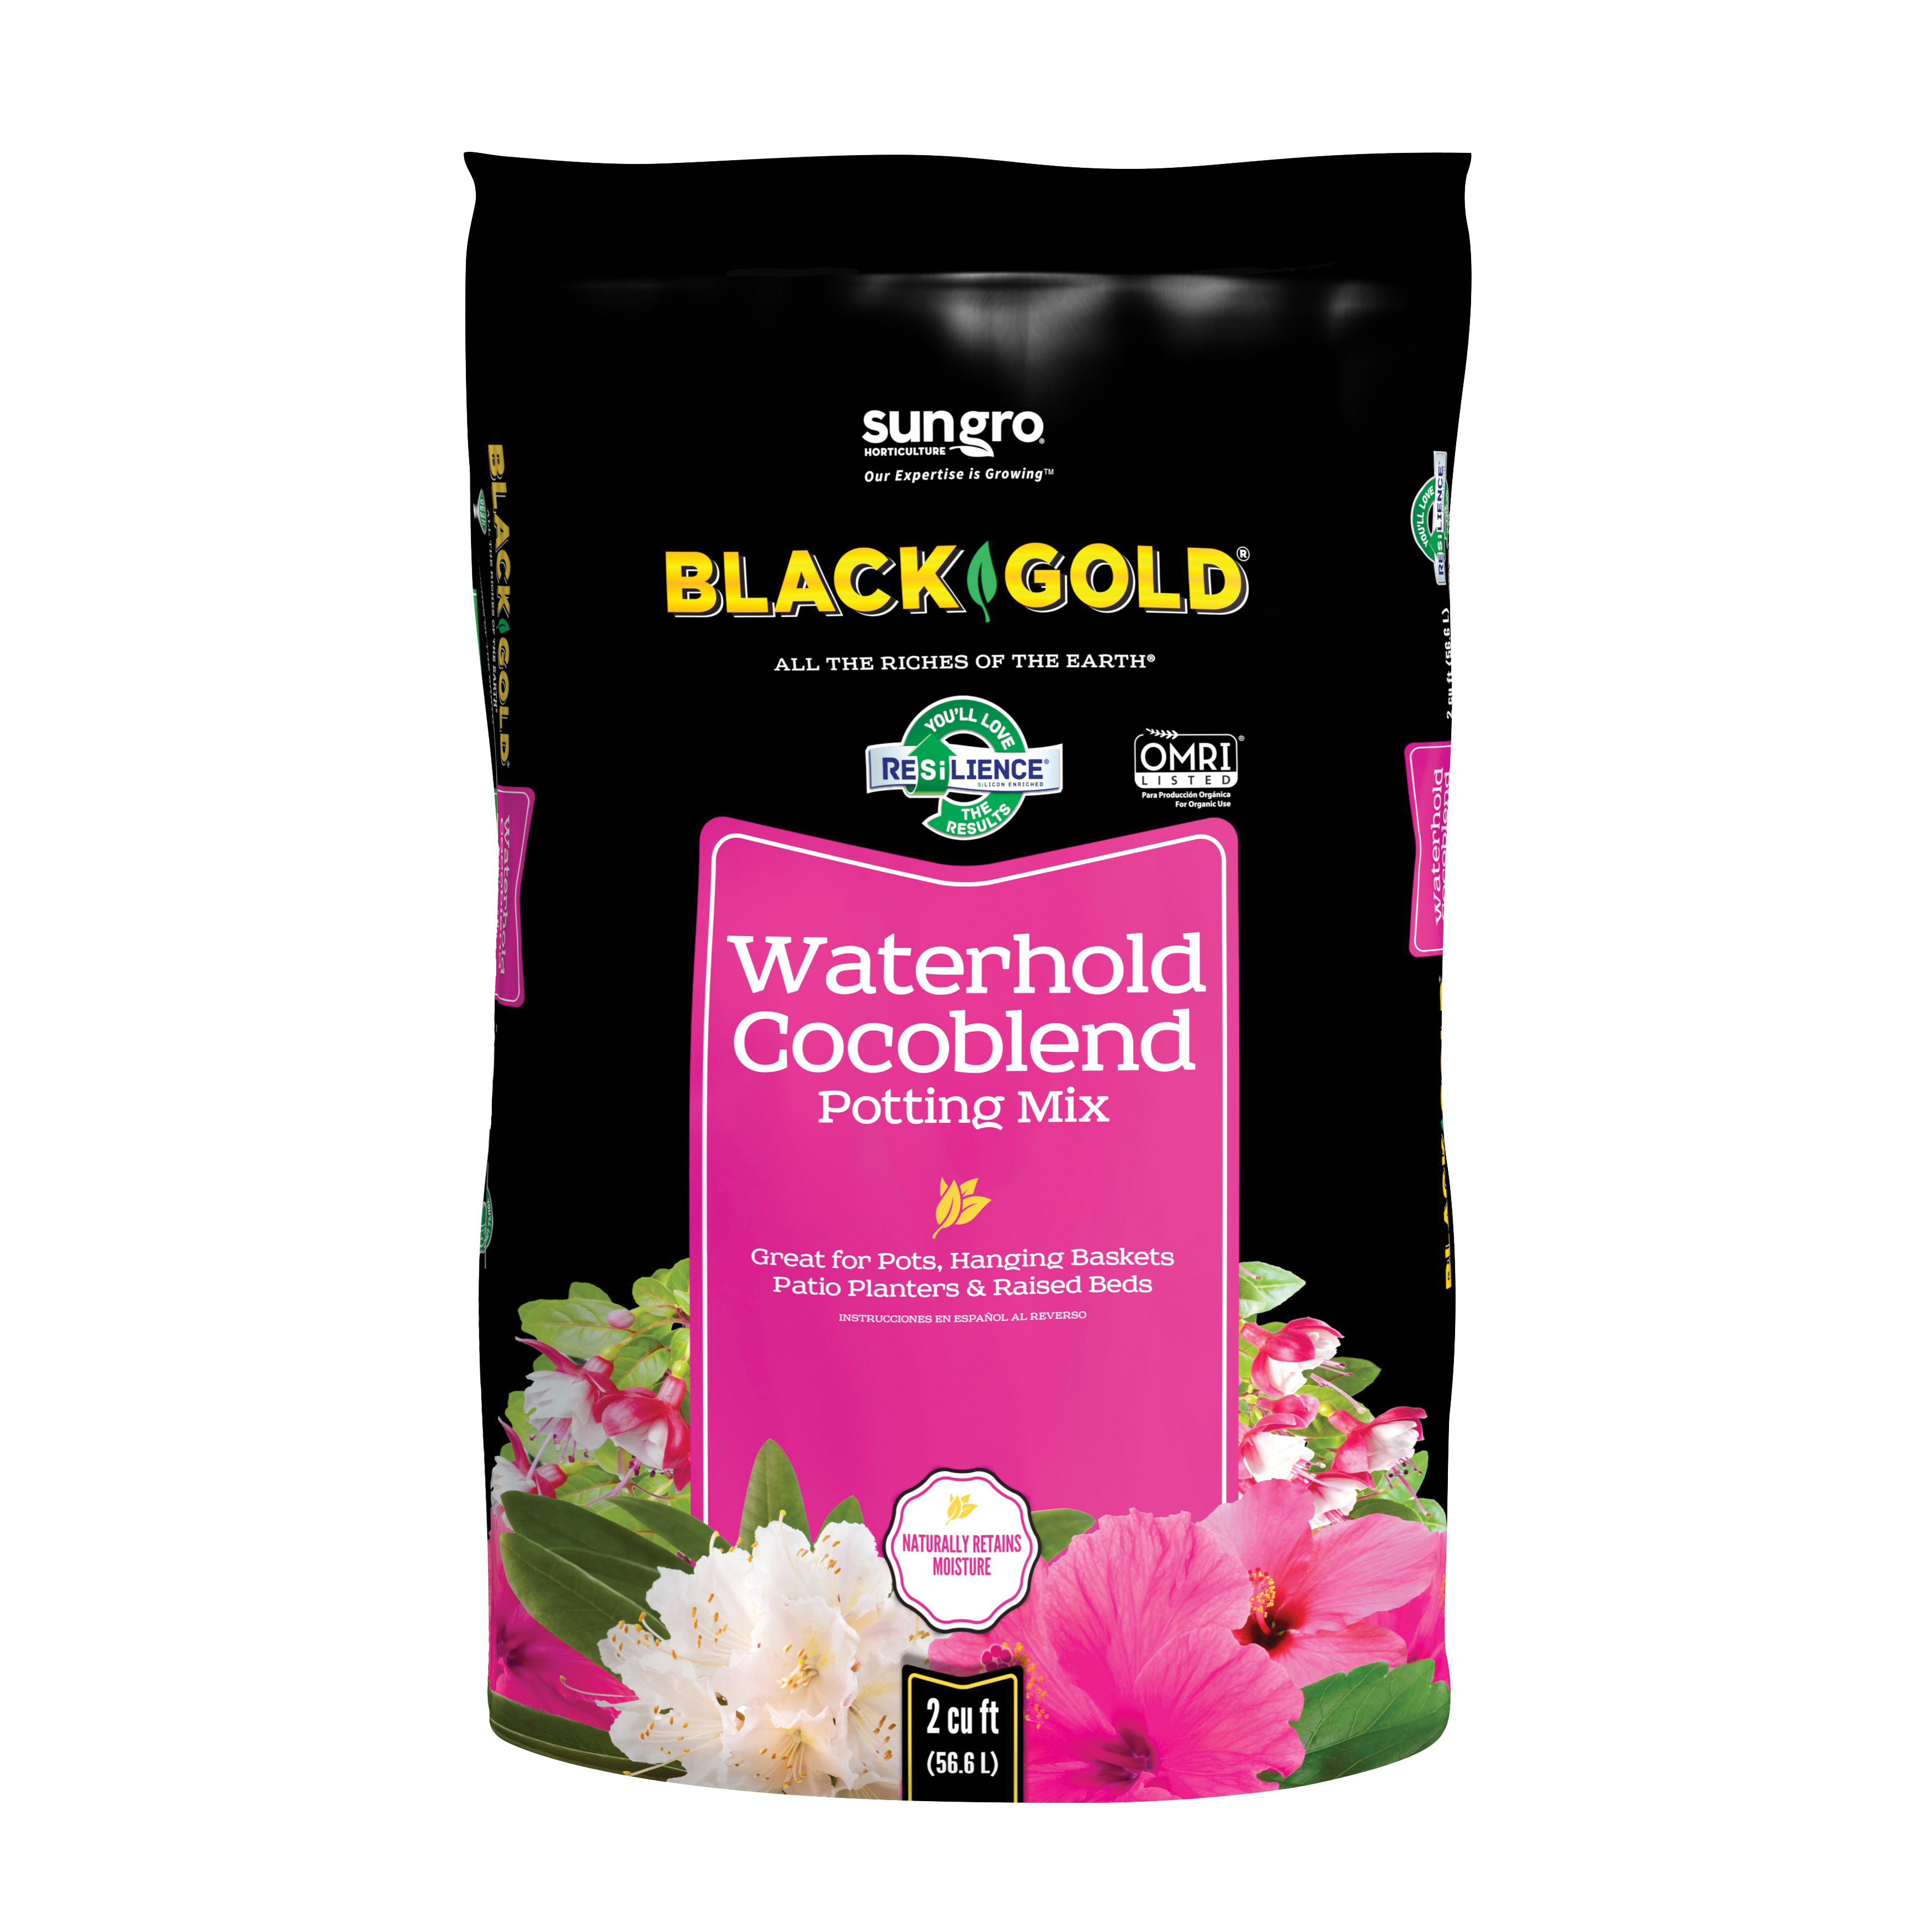 Picture of sun gro BLACK GOLD 1402030 2 CFL P Potting Mix, 2 cu-ft Coverage Area, Granular, Brown/Earthy, 40 Package, Bag